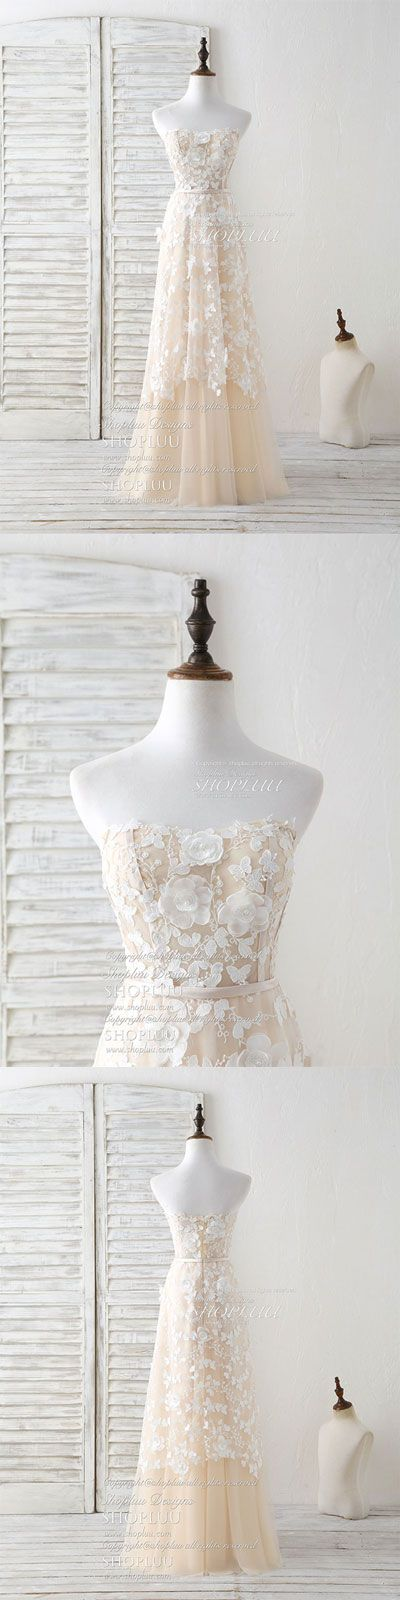 Champagne tulle lace applique long prom dress champagne evening dress, unique champagne tulle lace wedding dress